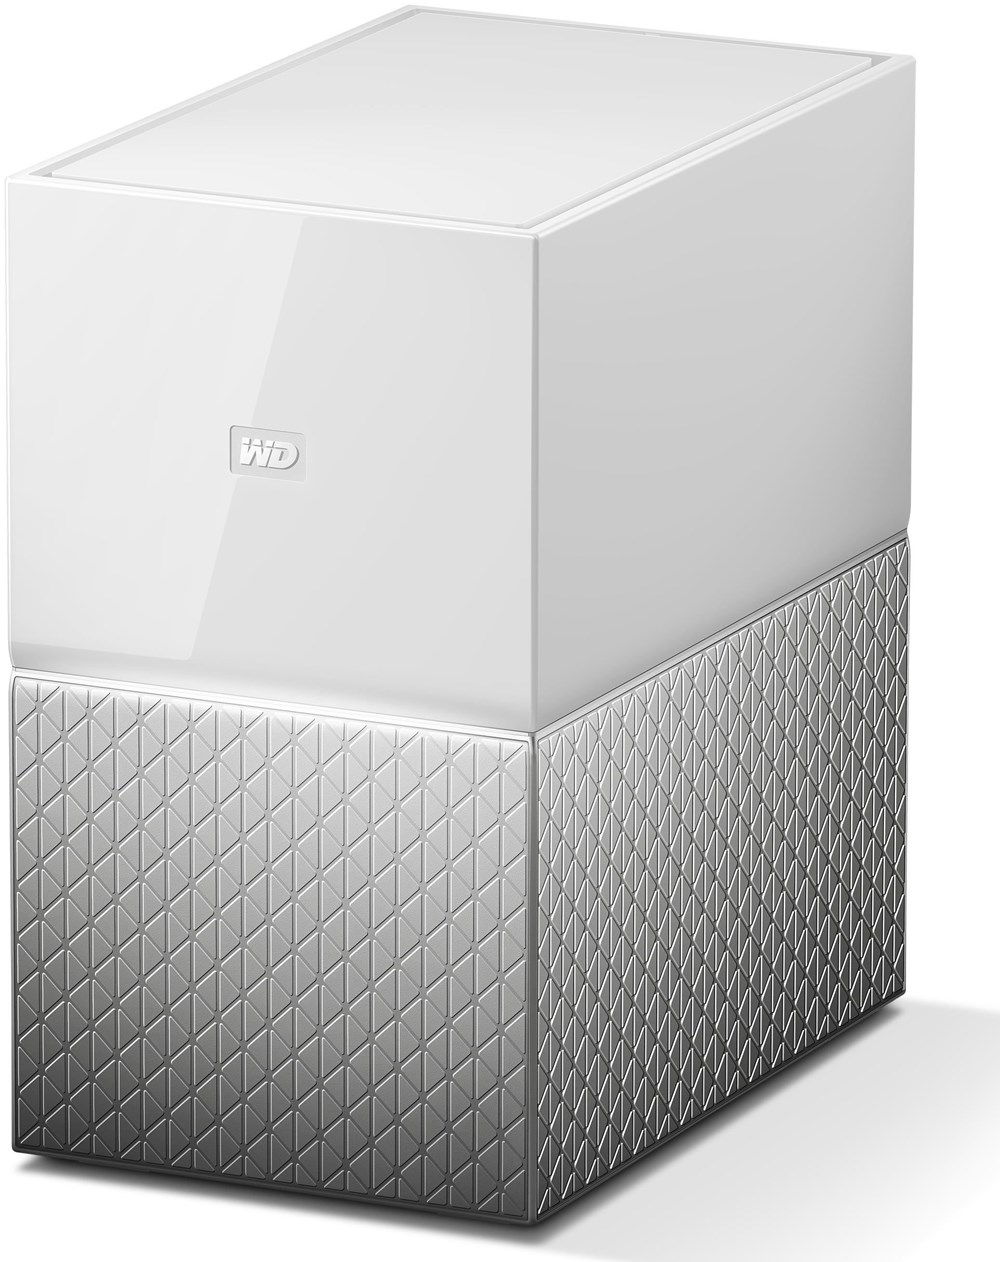 my cloud home duo 16tb pers nlicher cloud speicher nas network attached storage. Black Bedroom Furniture Sets. Home Design Ideas